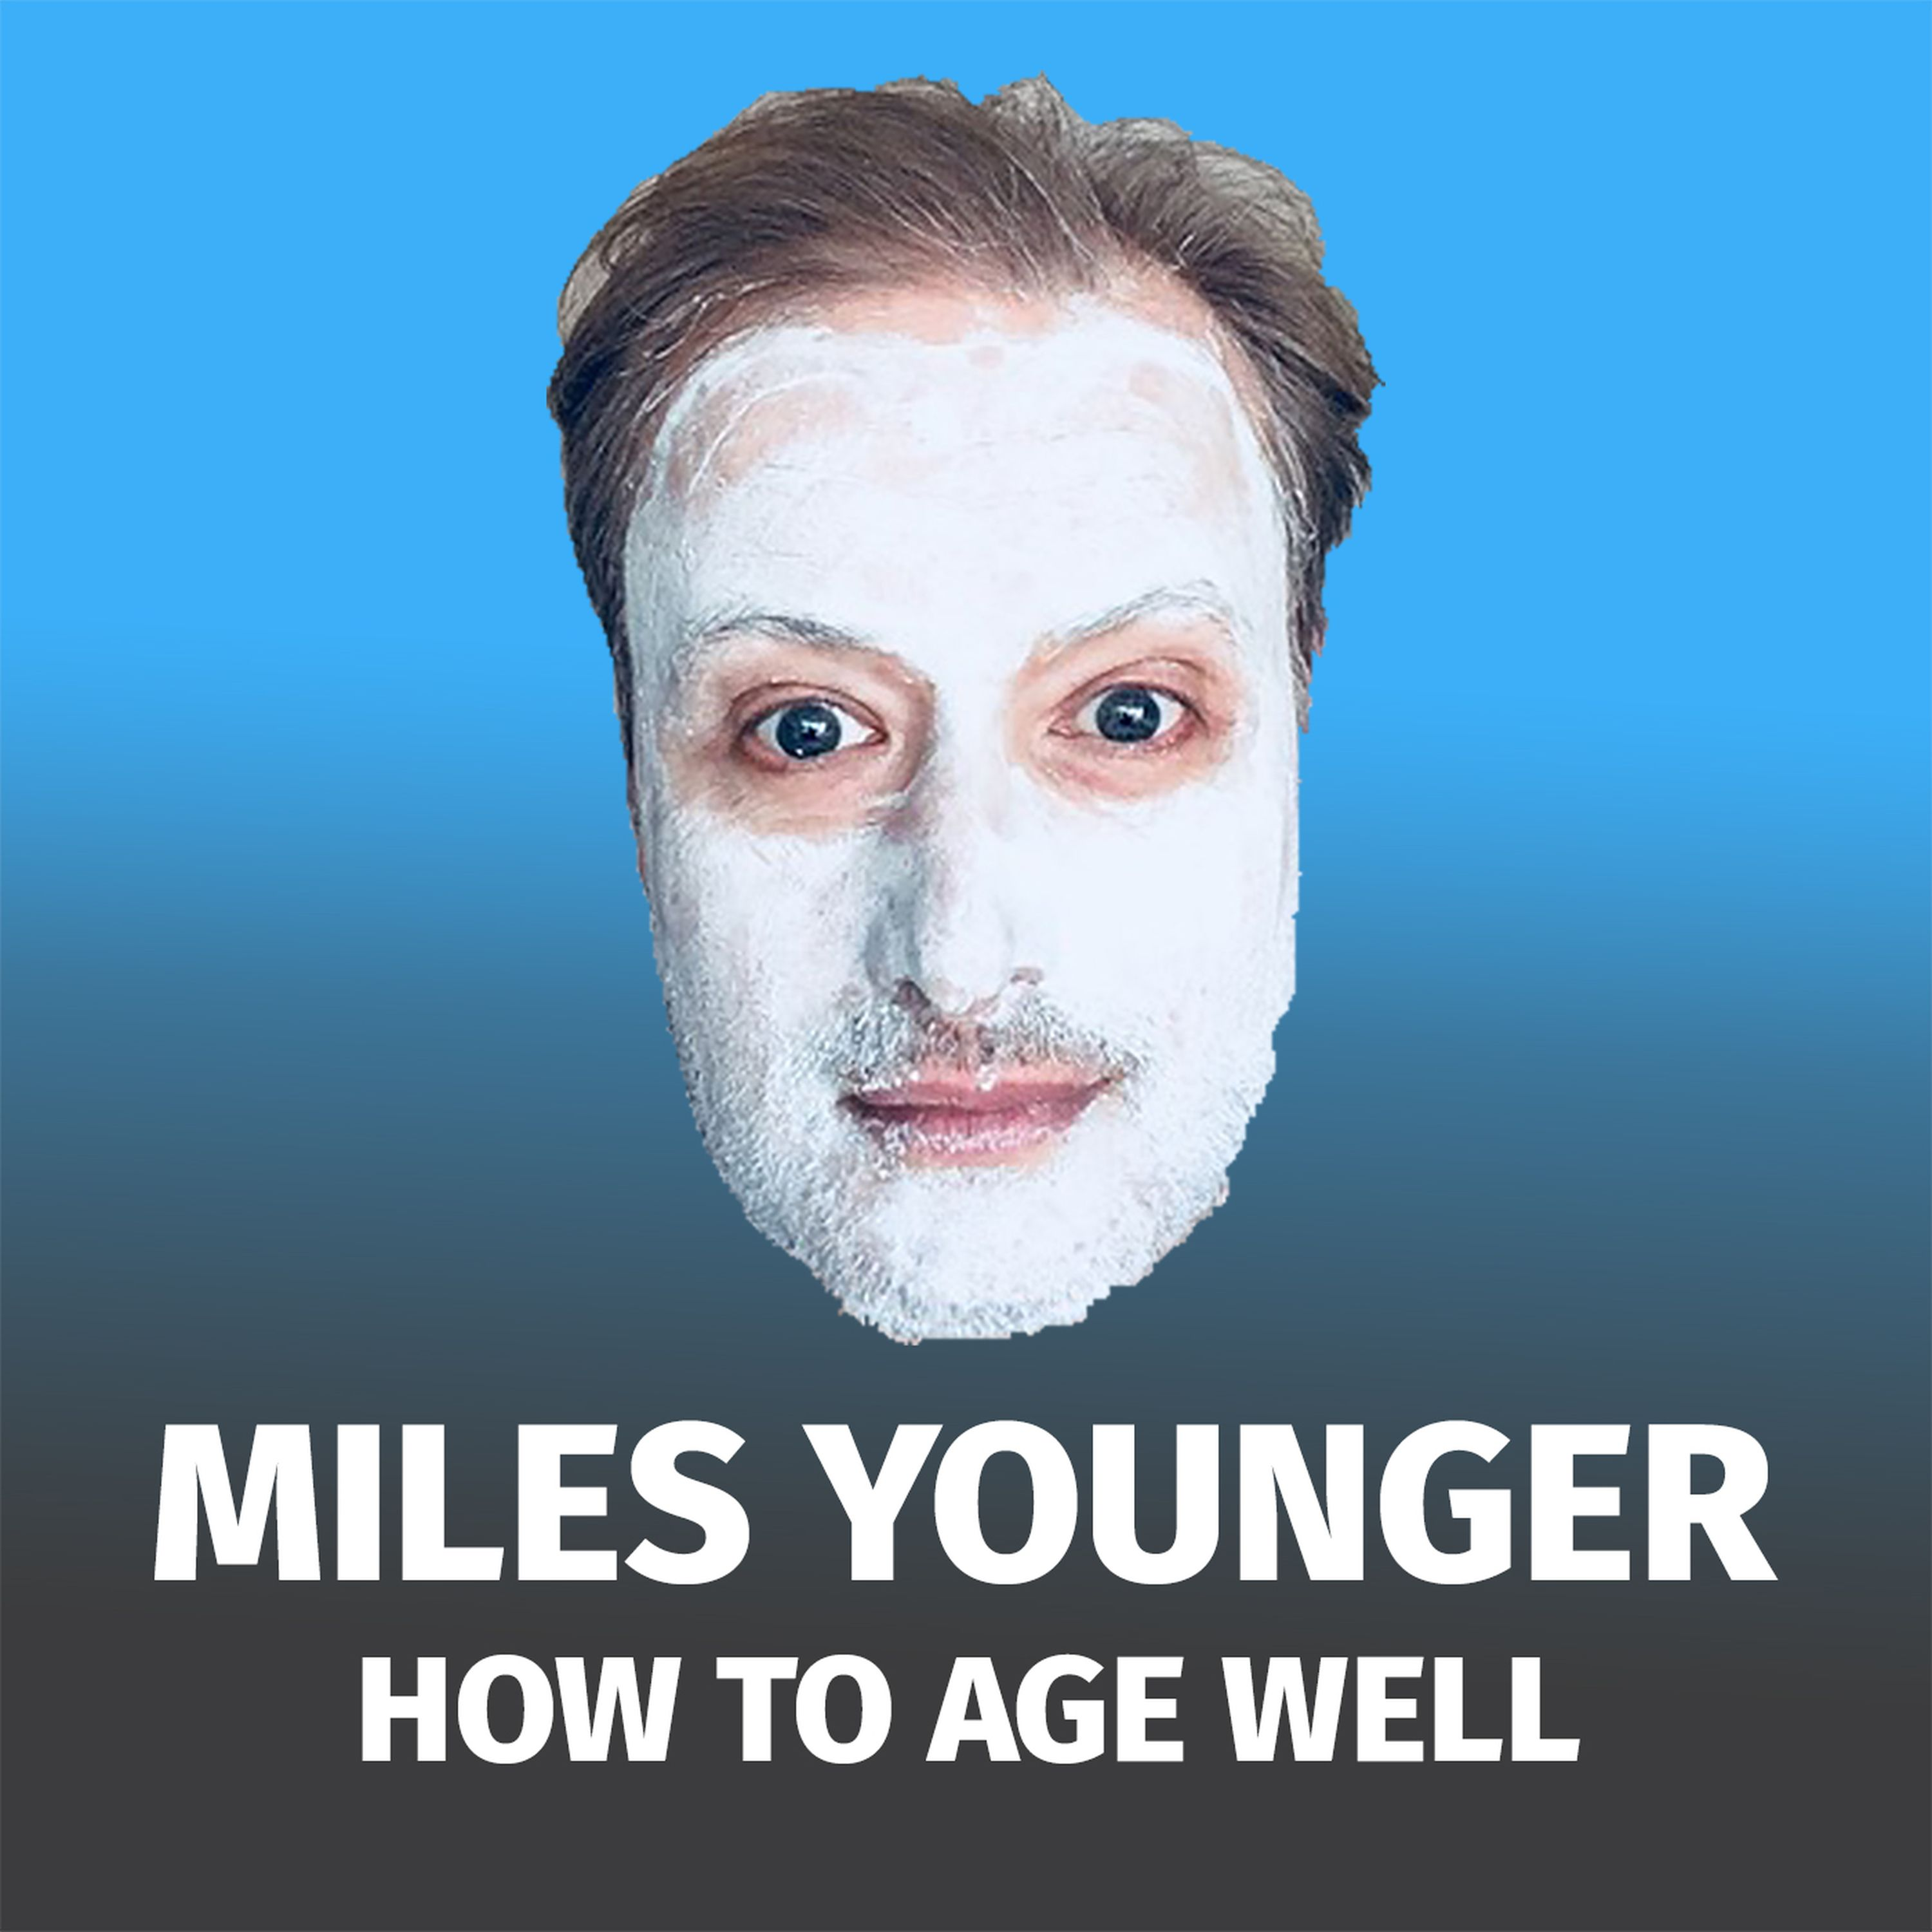 Miles Younger - How to Age Well - Angie Best